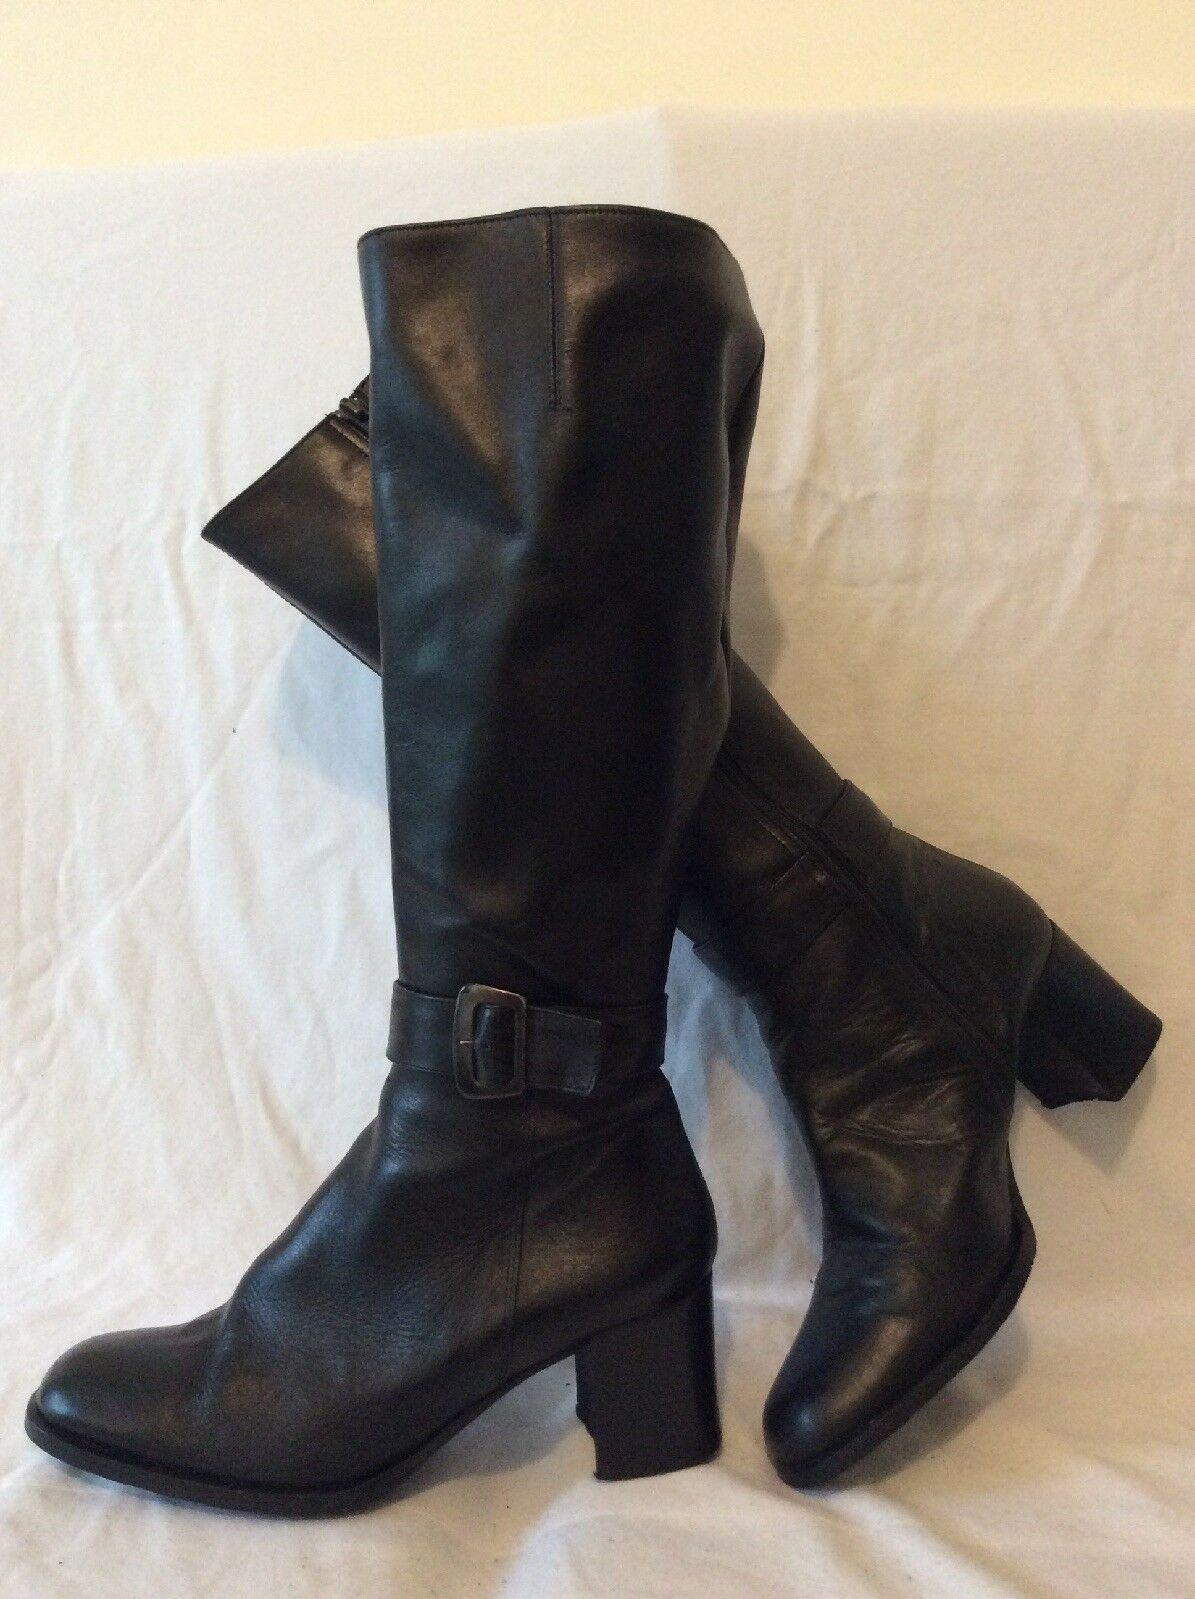 Barbara Dossi Black Knee High Leather Boots Size 38